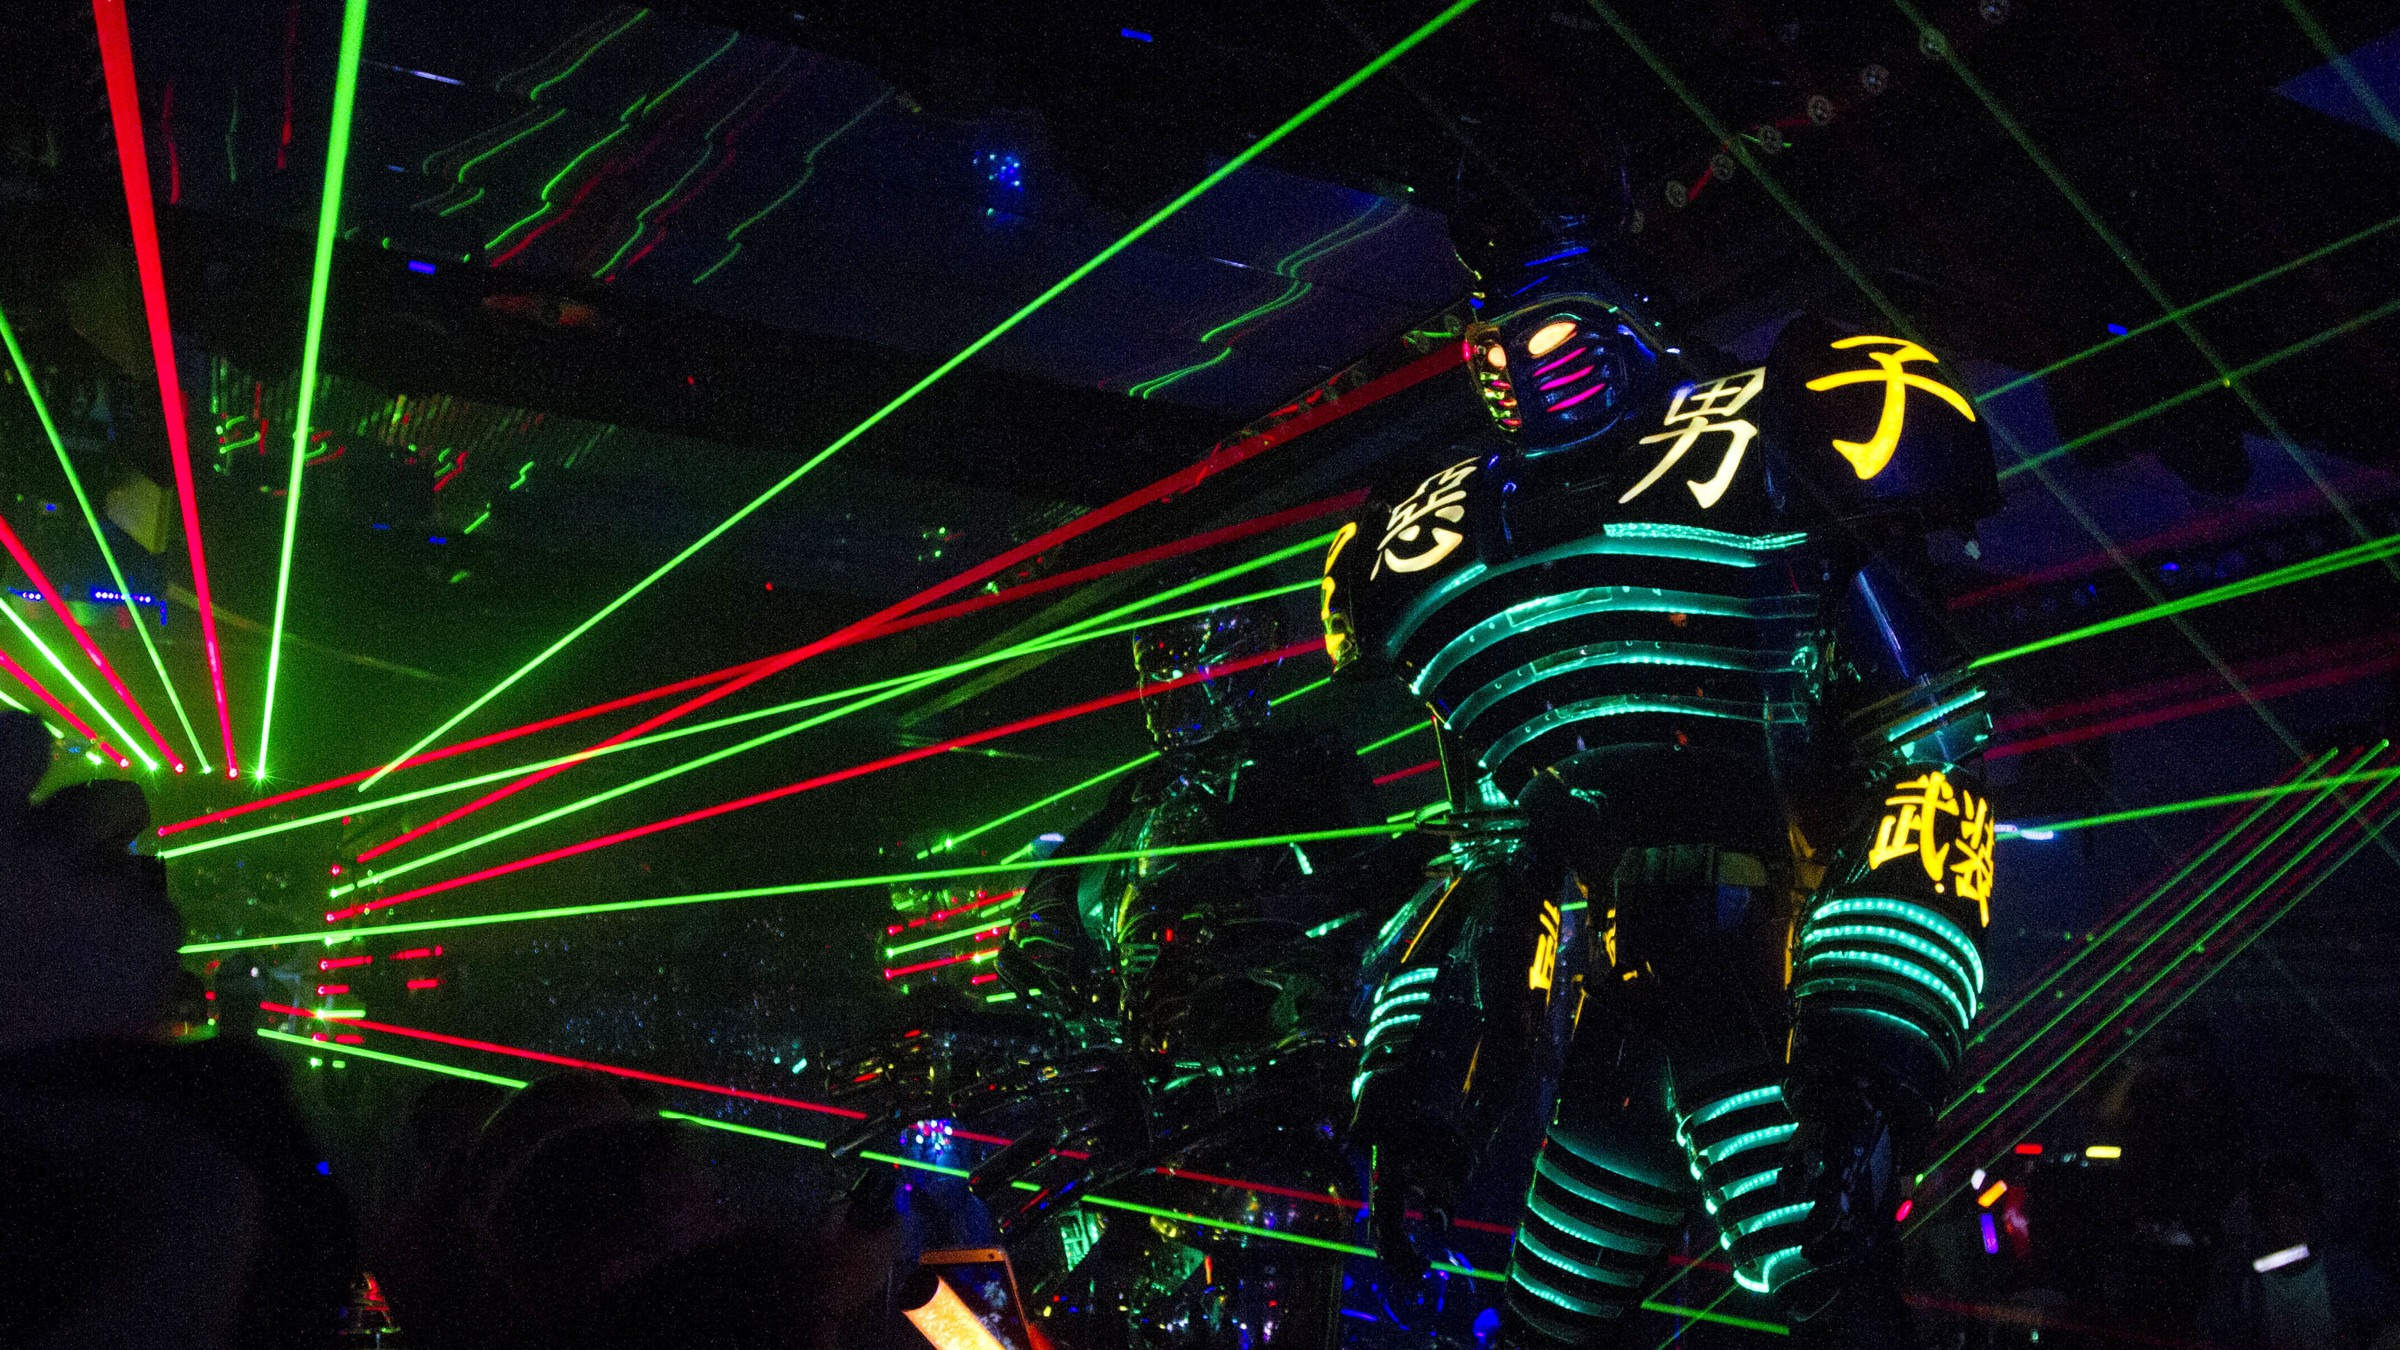 Forget LED bulbs—the future of interior lighting is lasers ...